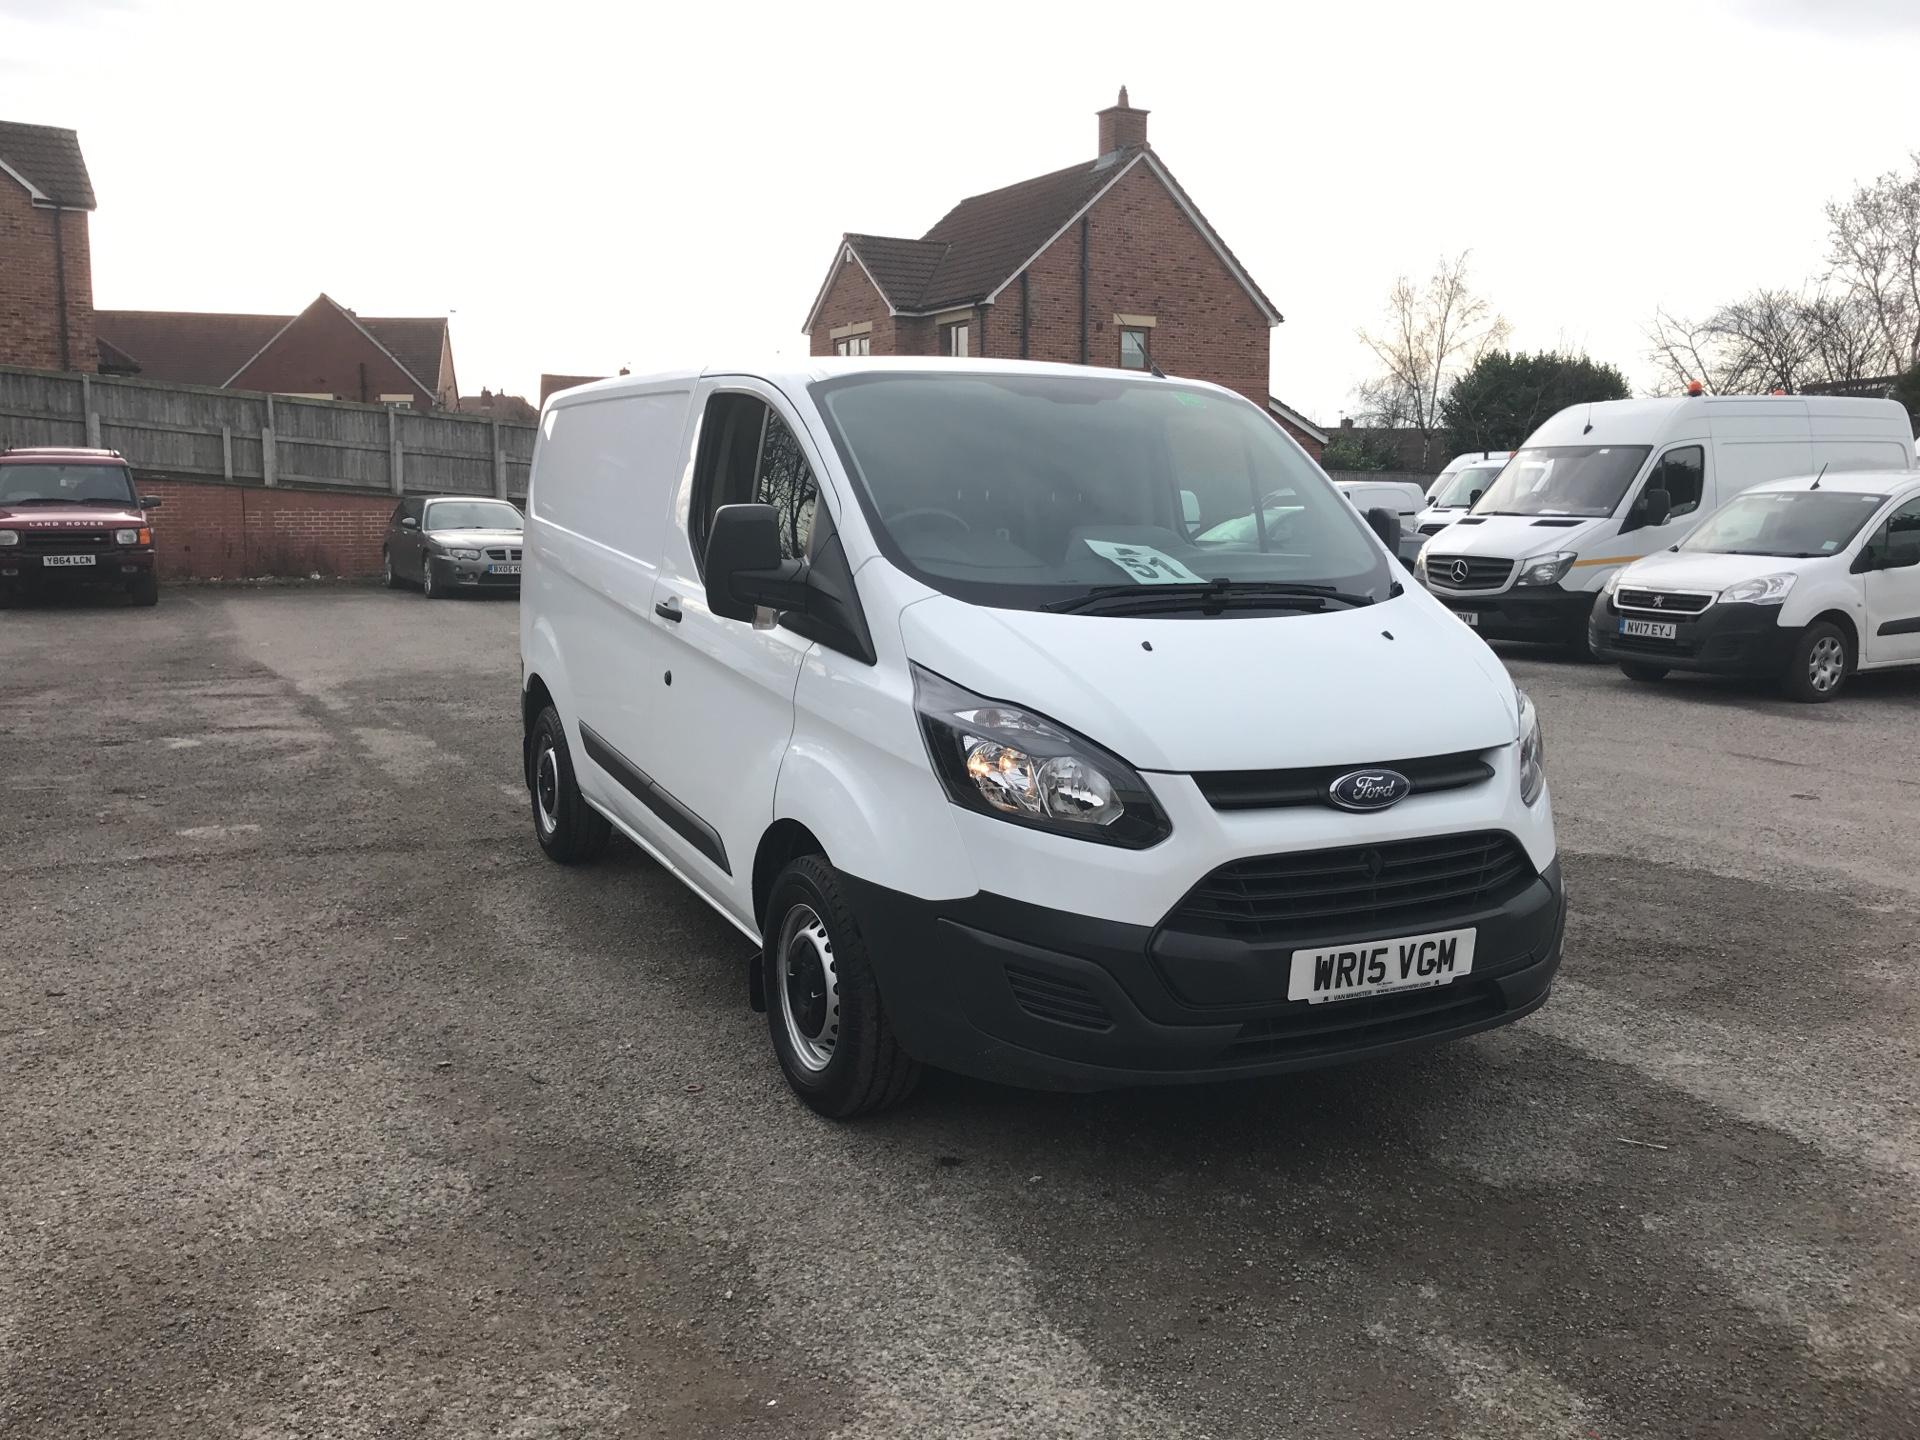 2015 Ford Transit Custom 290 L1 DIESEL FWD 2.2  TDCI 100PS LOW ROOF VAN EURO 5 (WR15VGM)